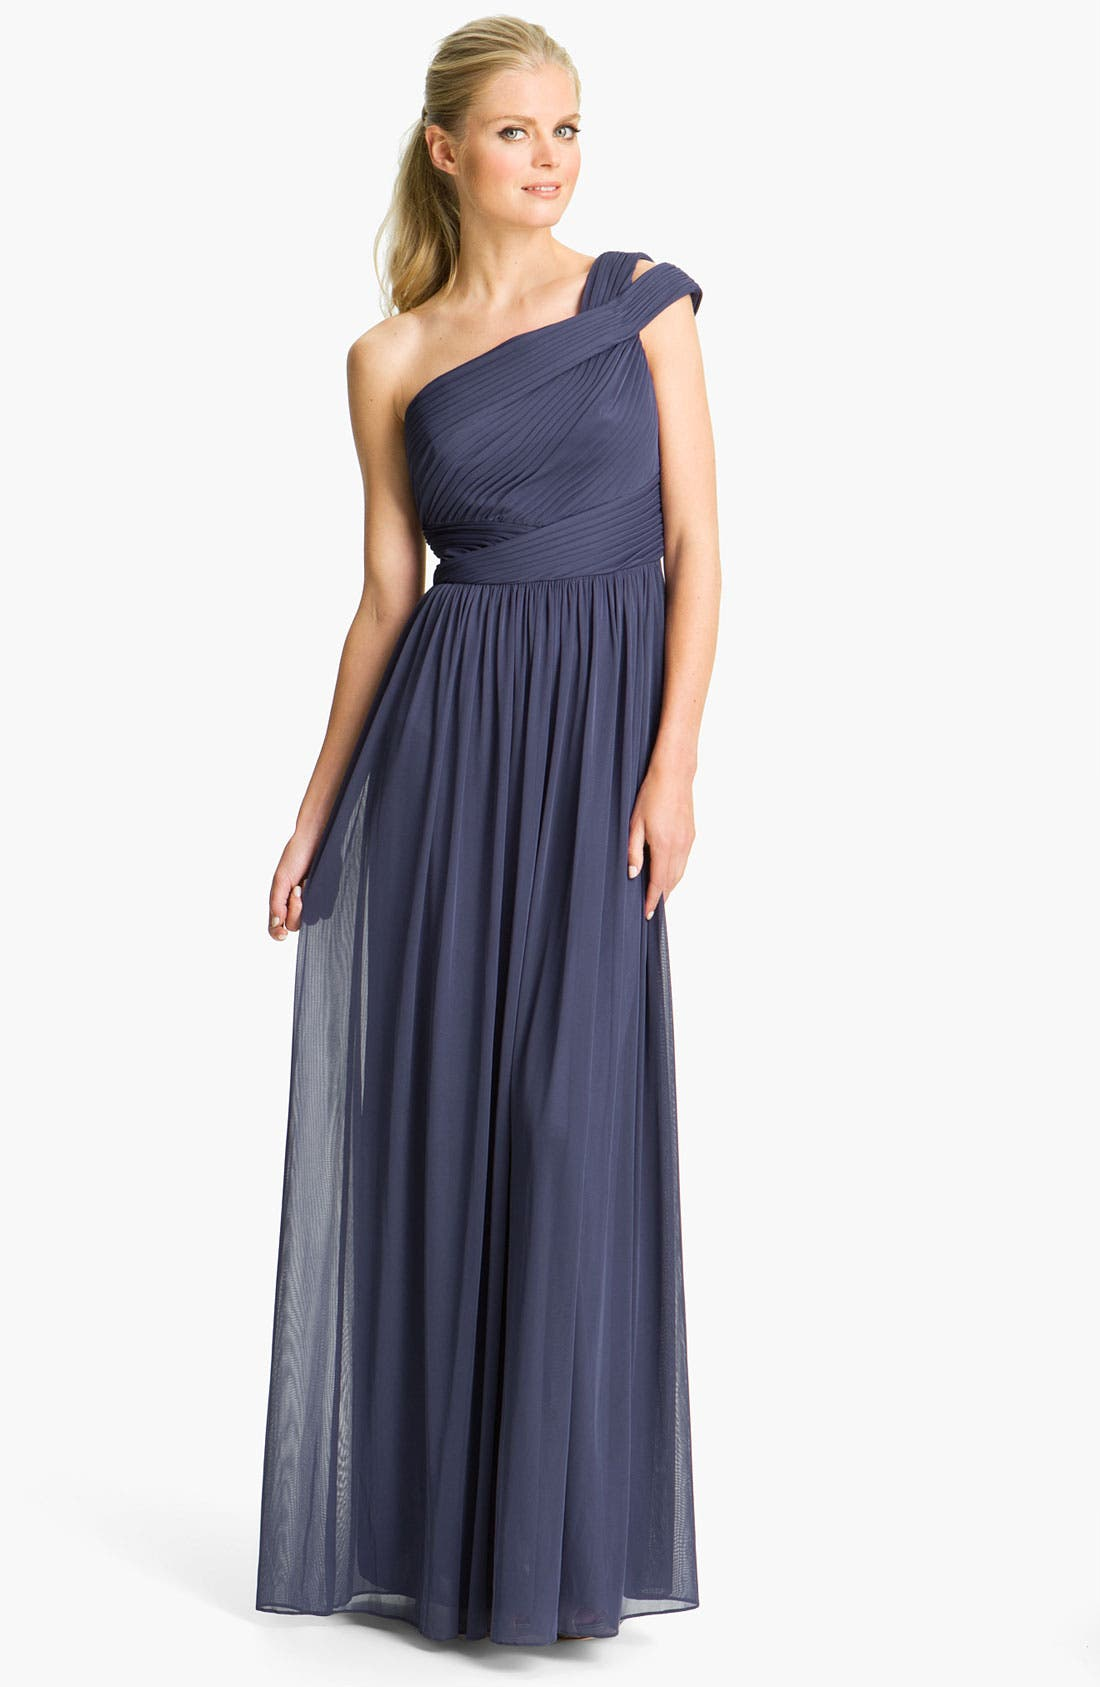 Alternate Image 1 Selected - ML Monique Lhuillier Bridesmaids Cutout One-Shoulder Mesh Gown (Nordstrom Exclusive)